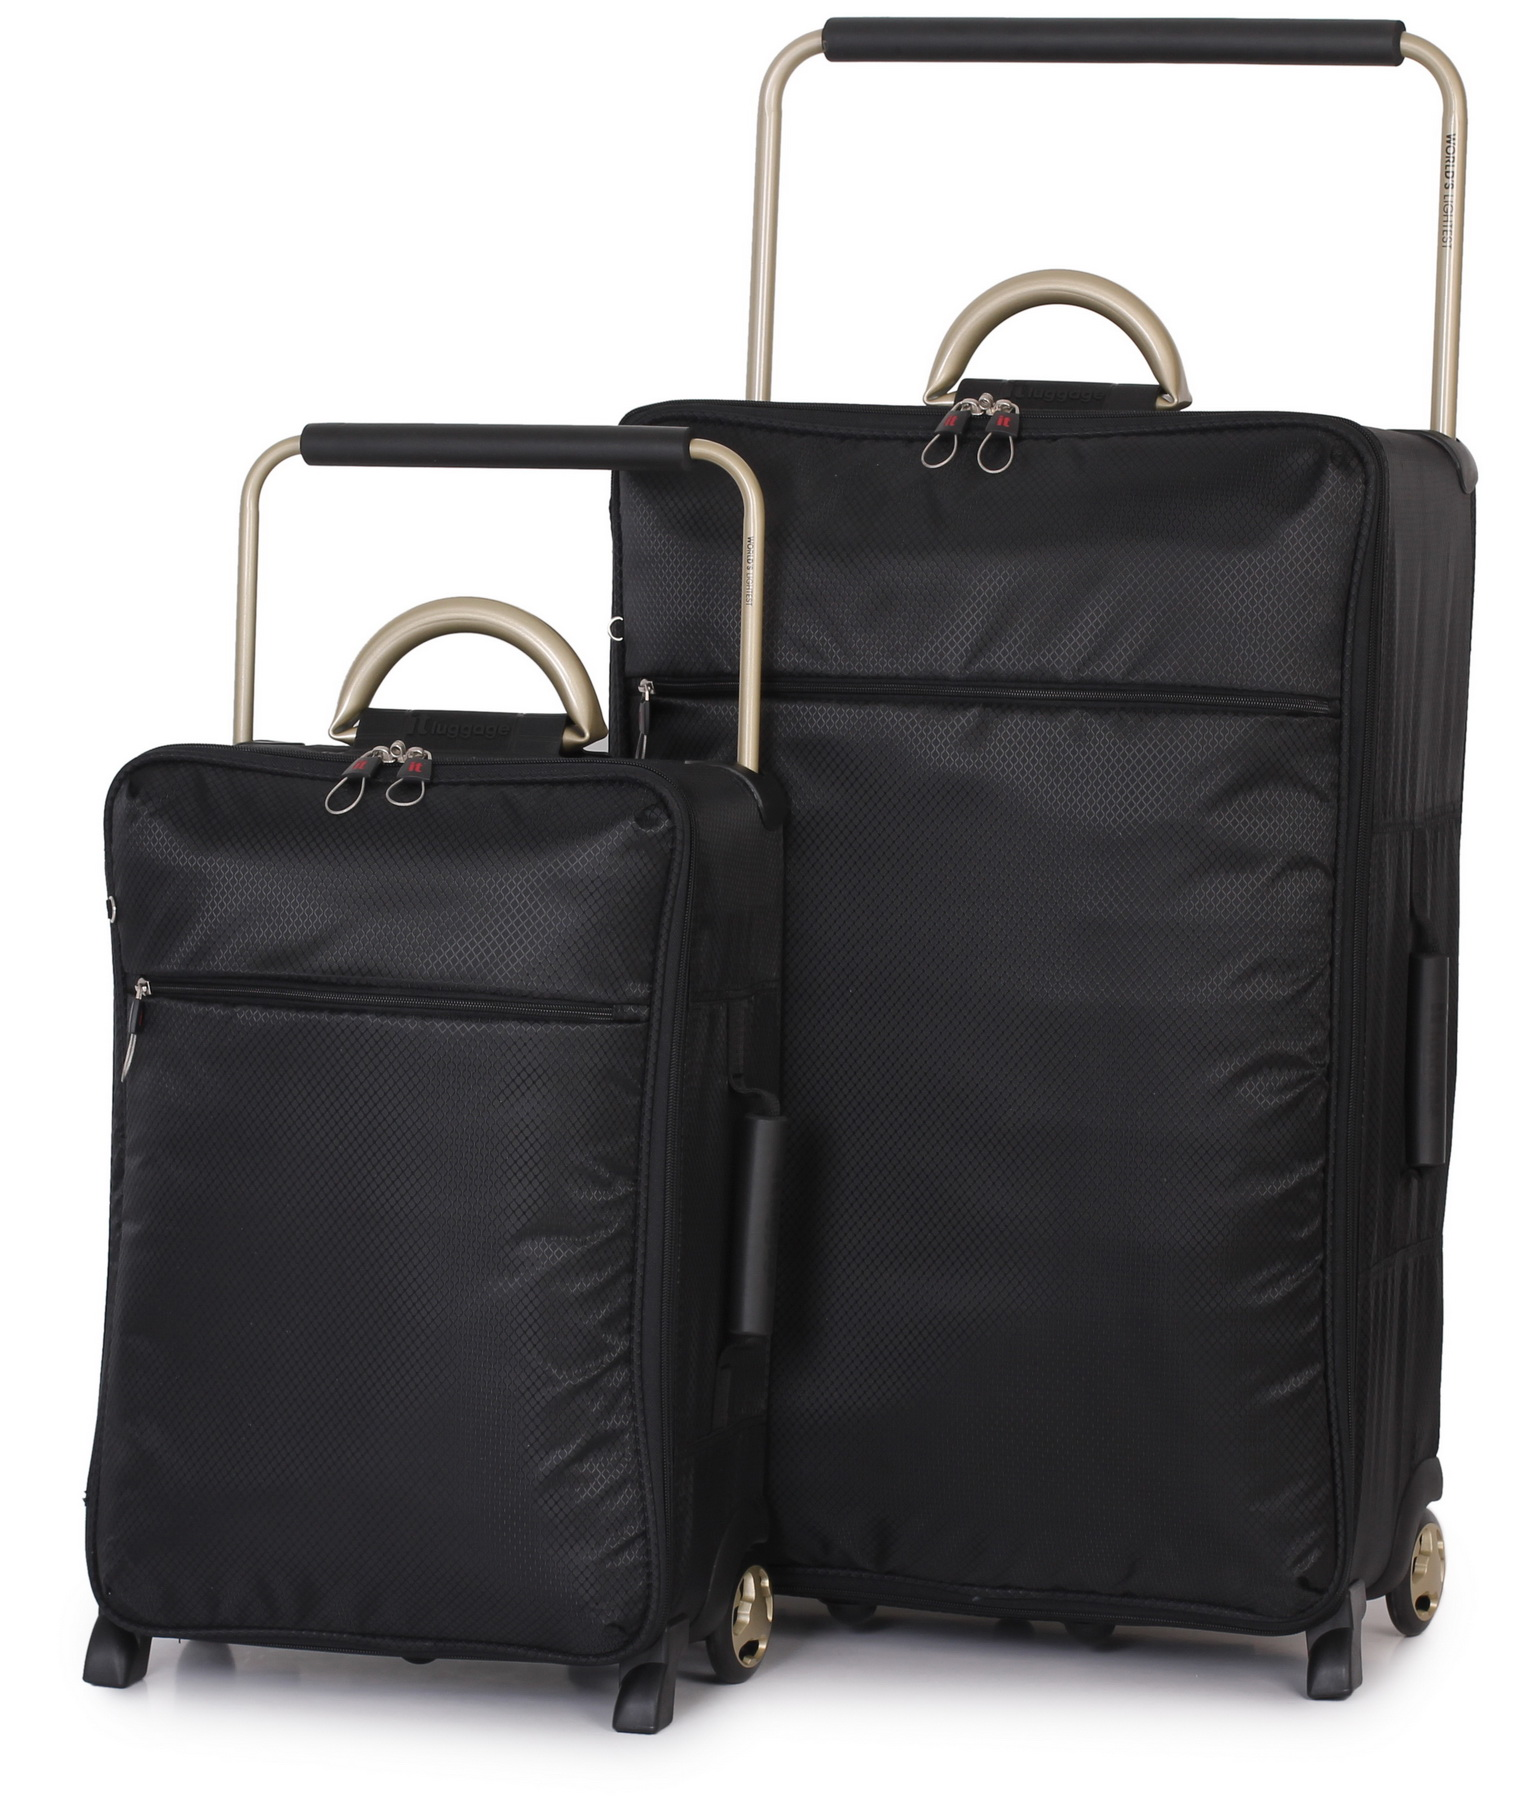 It Luggage Reviews Productreview Com Au